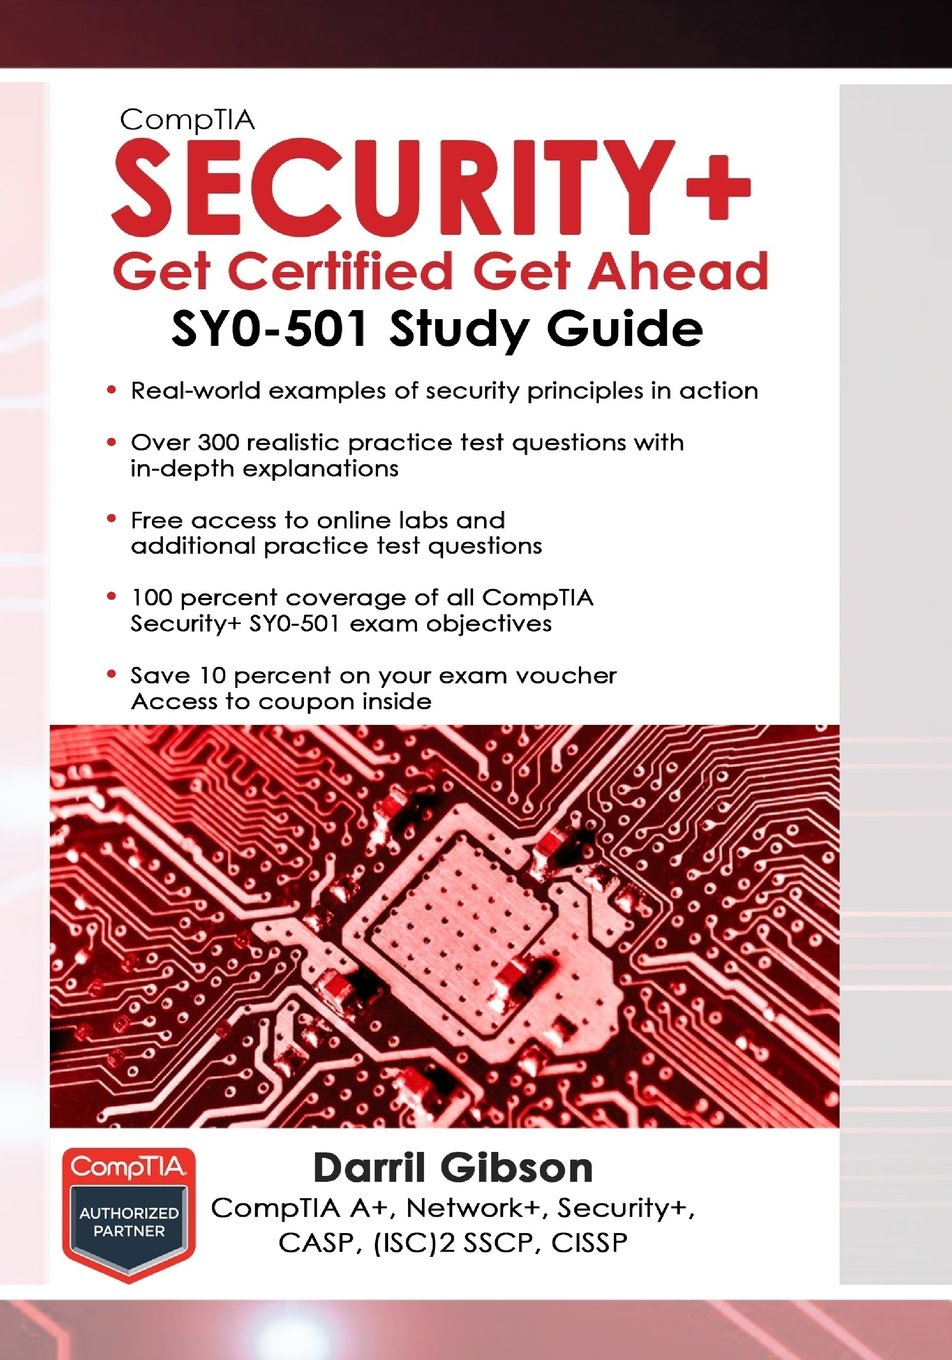 CompTIA Security+ Get Certified Get Ahead: SY0-501 Study Guide (Inglés) Tapa blanda Darril Gibson 1939136059